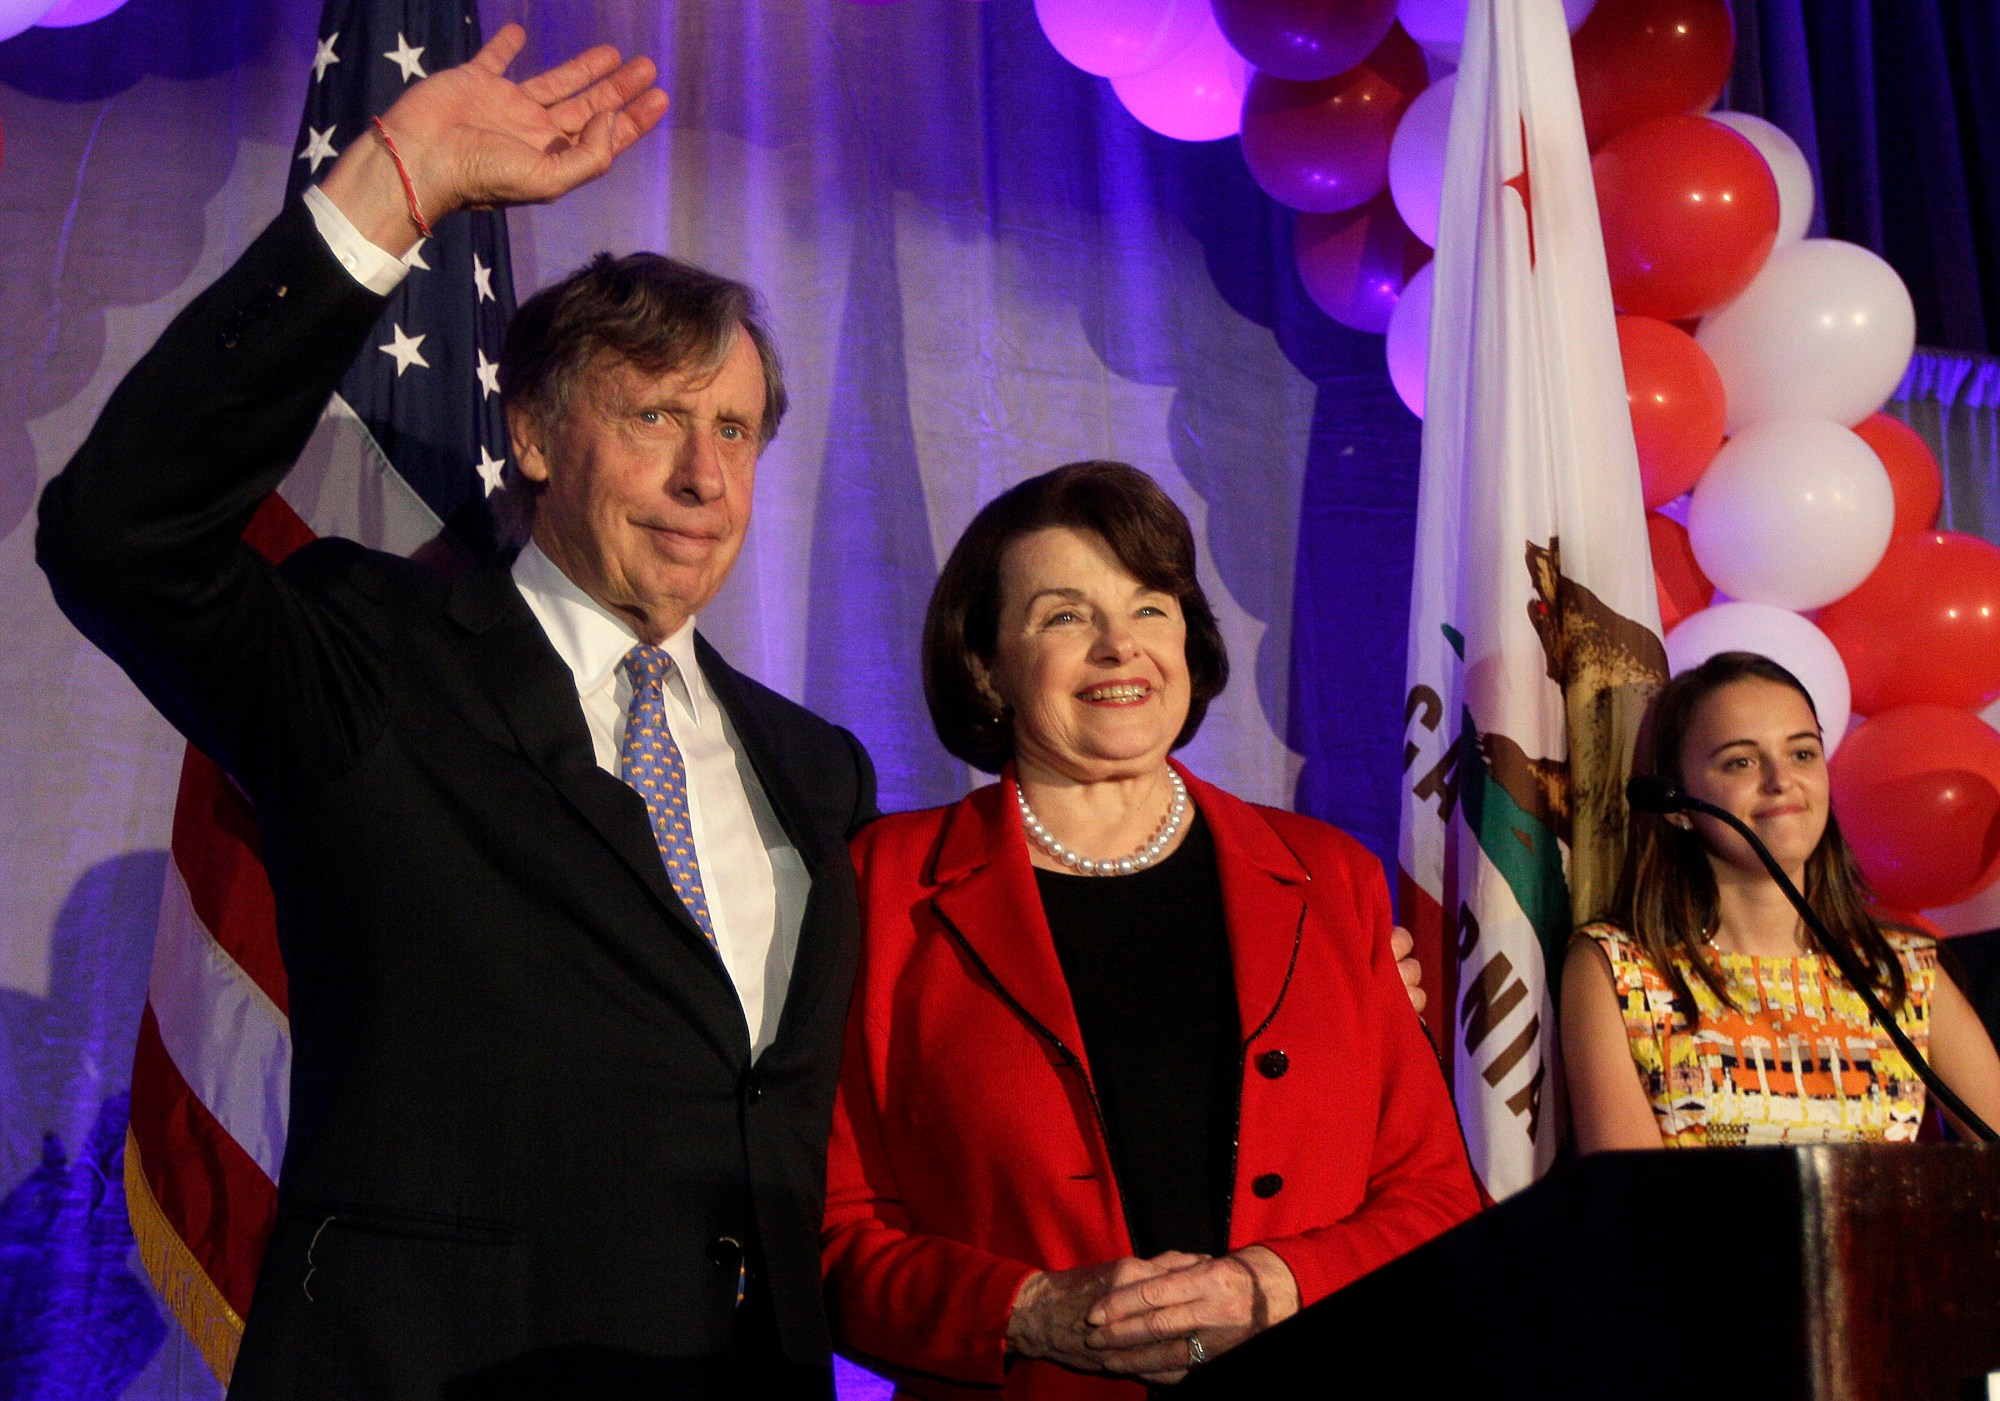 U.S. Sen. Dianne Feinstein, center, smiles as she stands on stage with husband Richard Blum before speaking at an election night rally in San Francisco on Nov. 6, 2012. (AP Photo/Jeff Chiu)